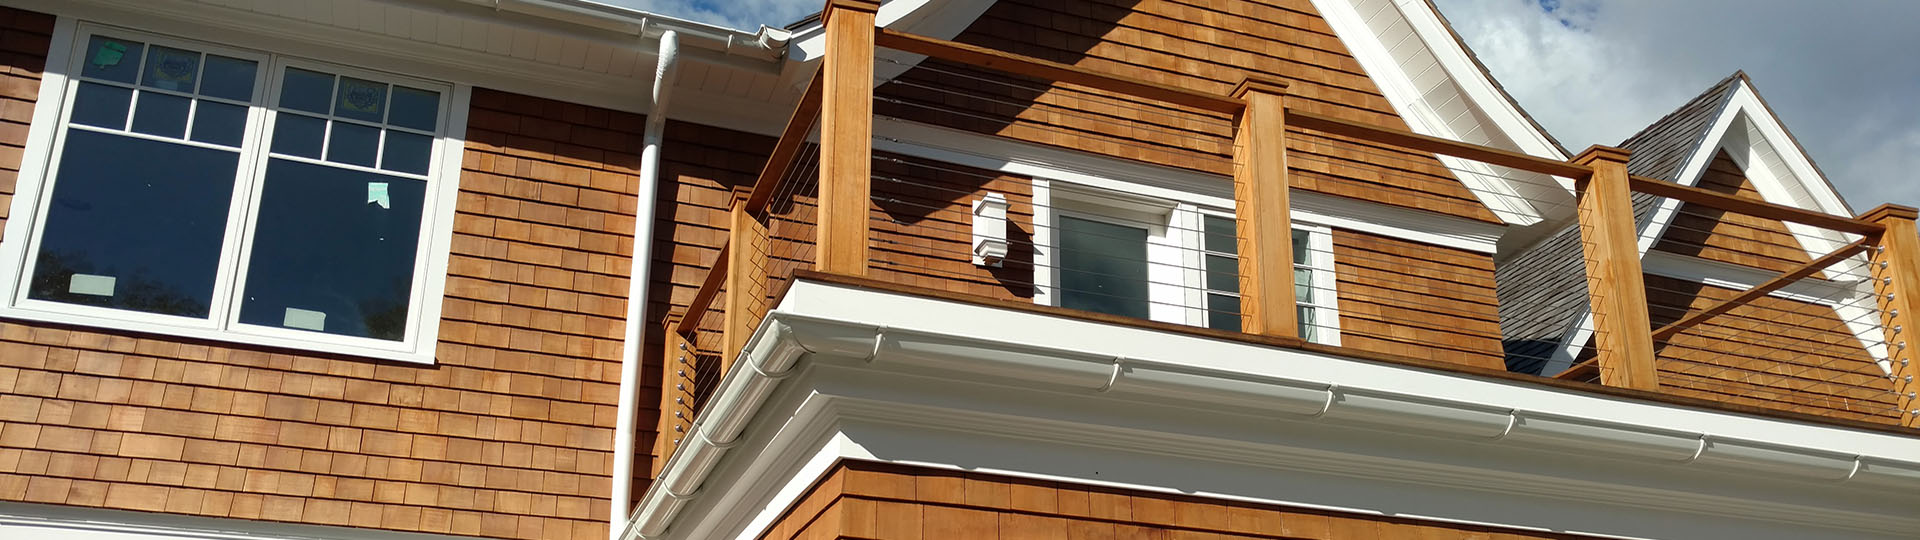 New Gutters Installations Long Island Replacement